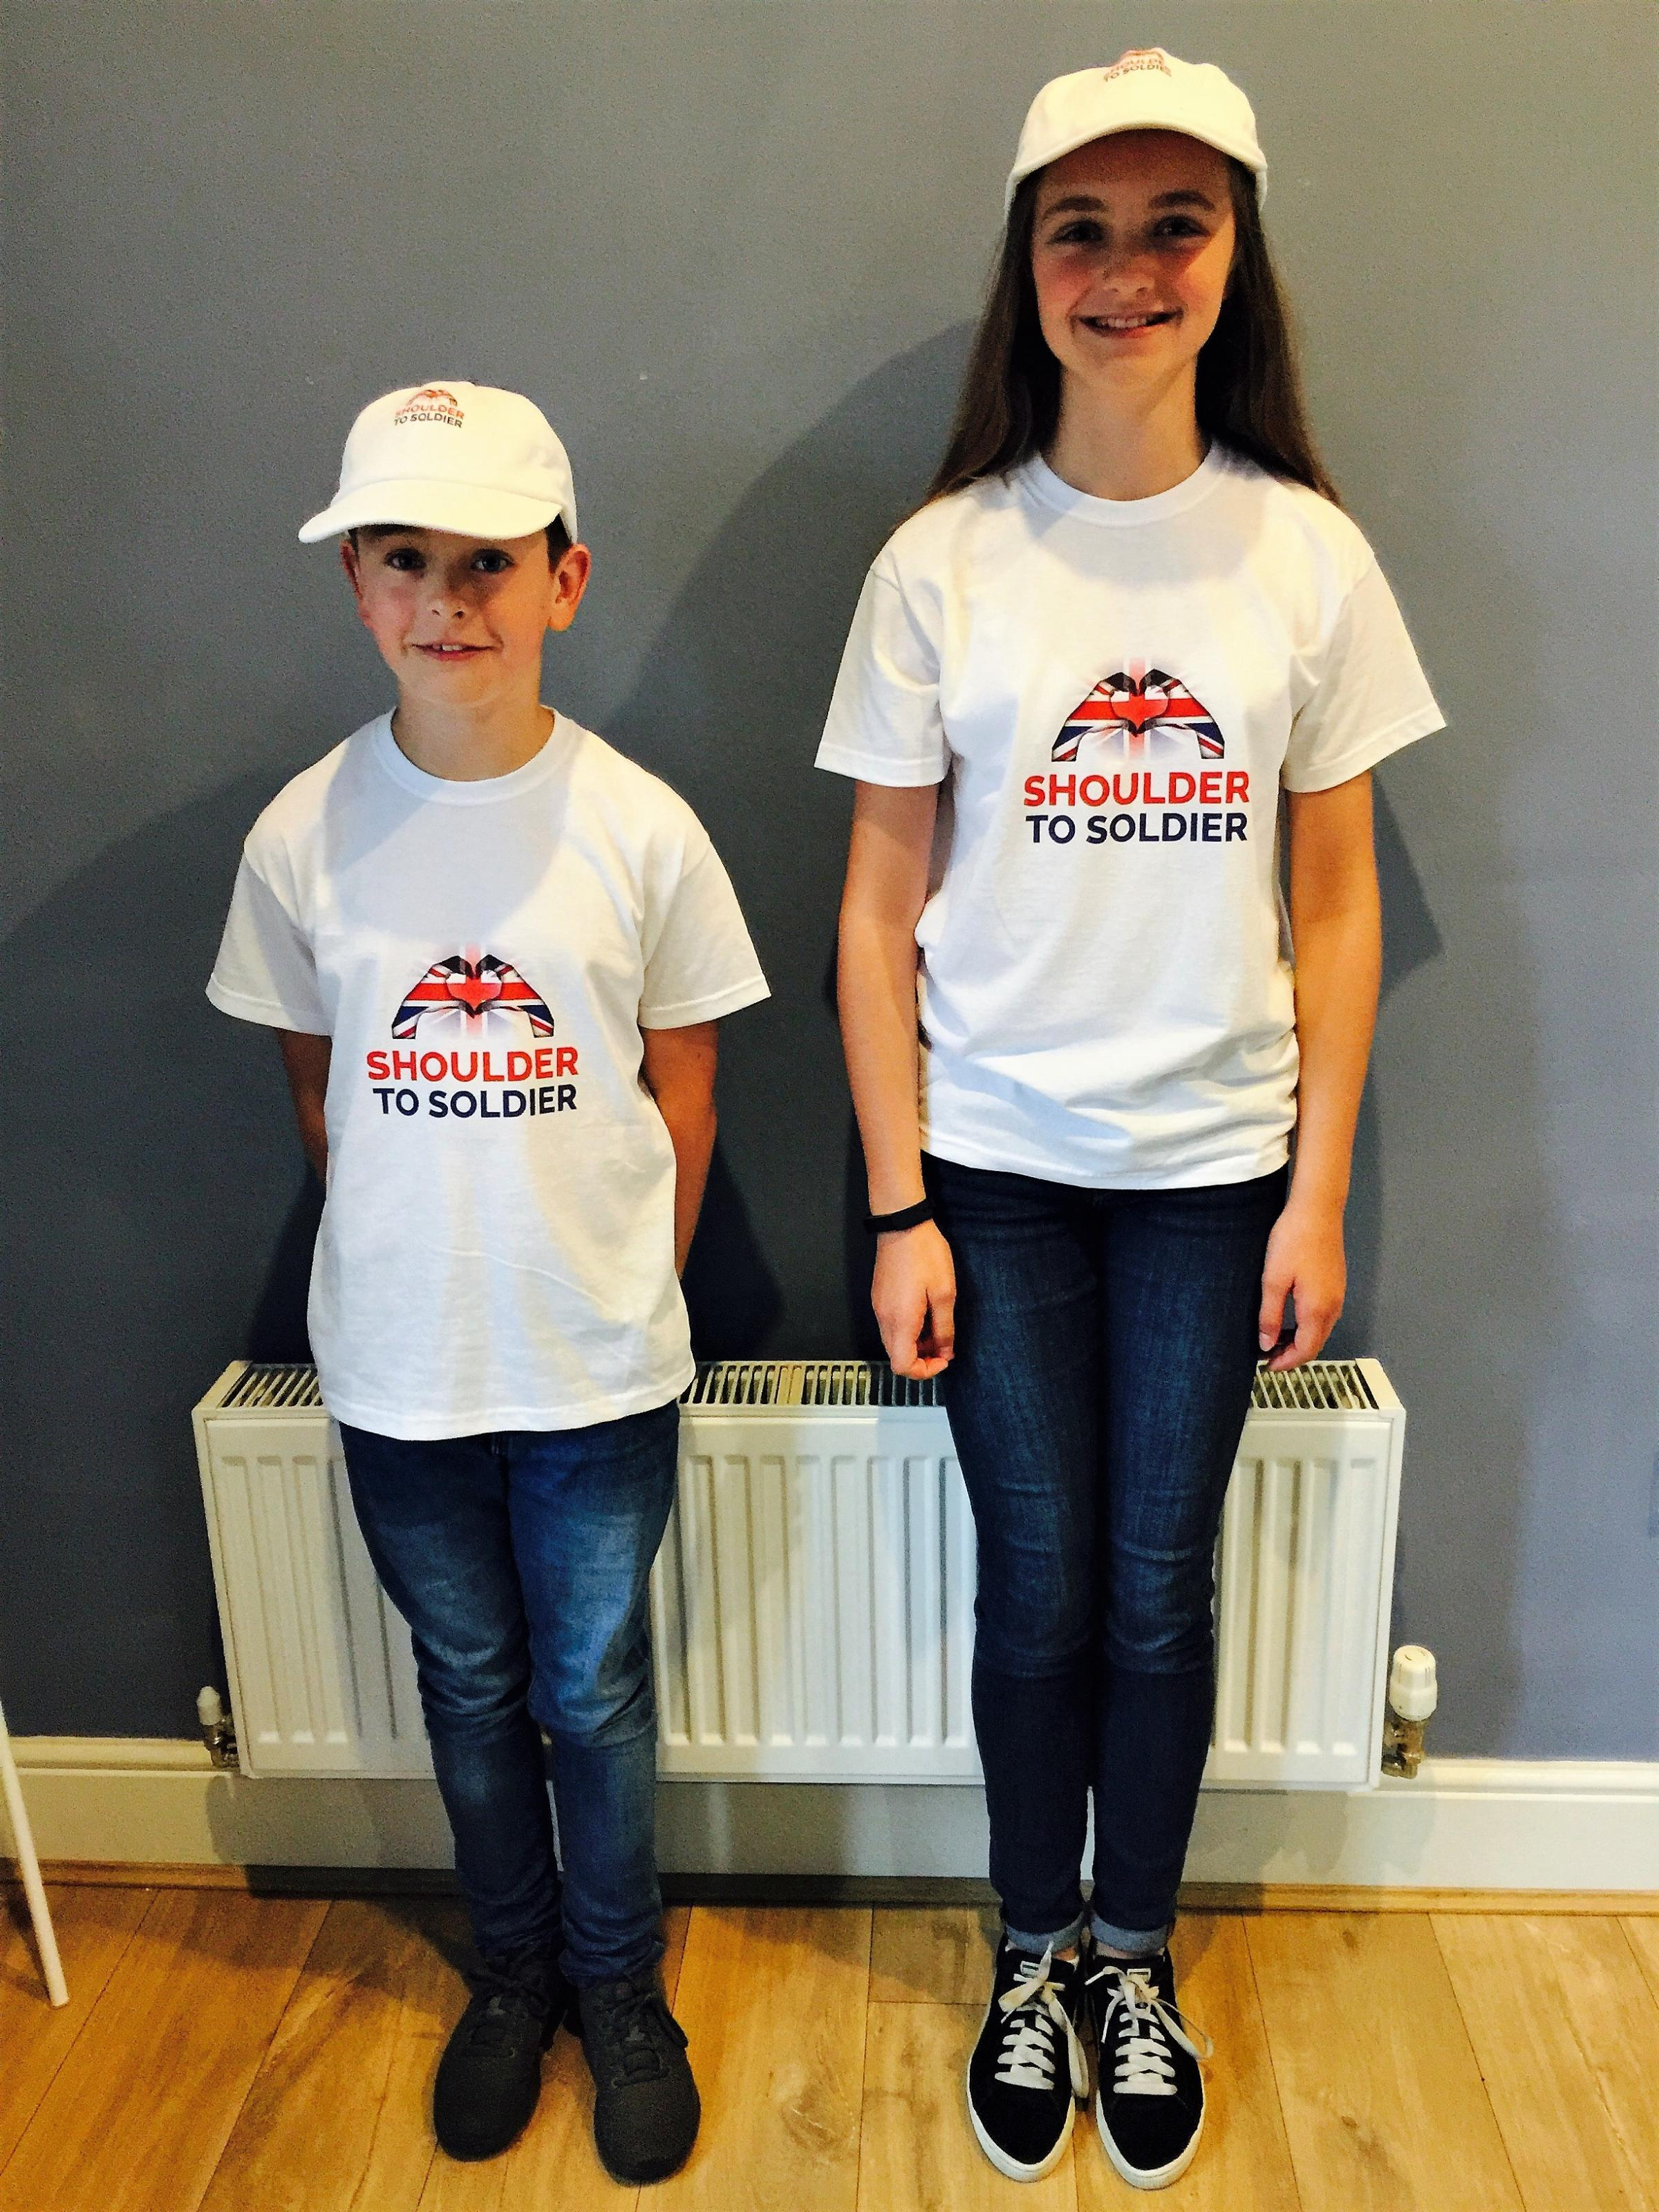 Ethan Stansfield and Katie Coates are taking on the Yorkshire Three Peaks challenge to raise funds for the new Shoulder to Soldier charity